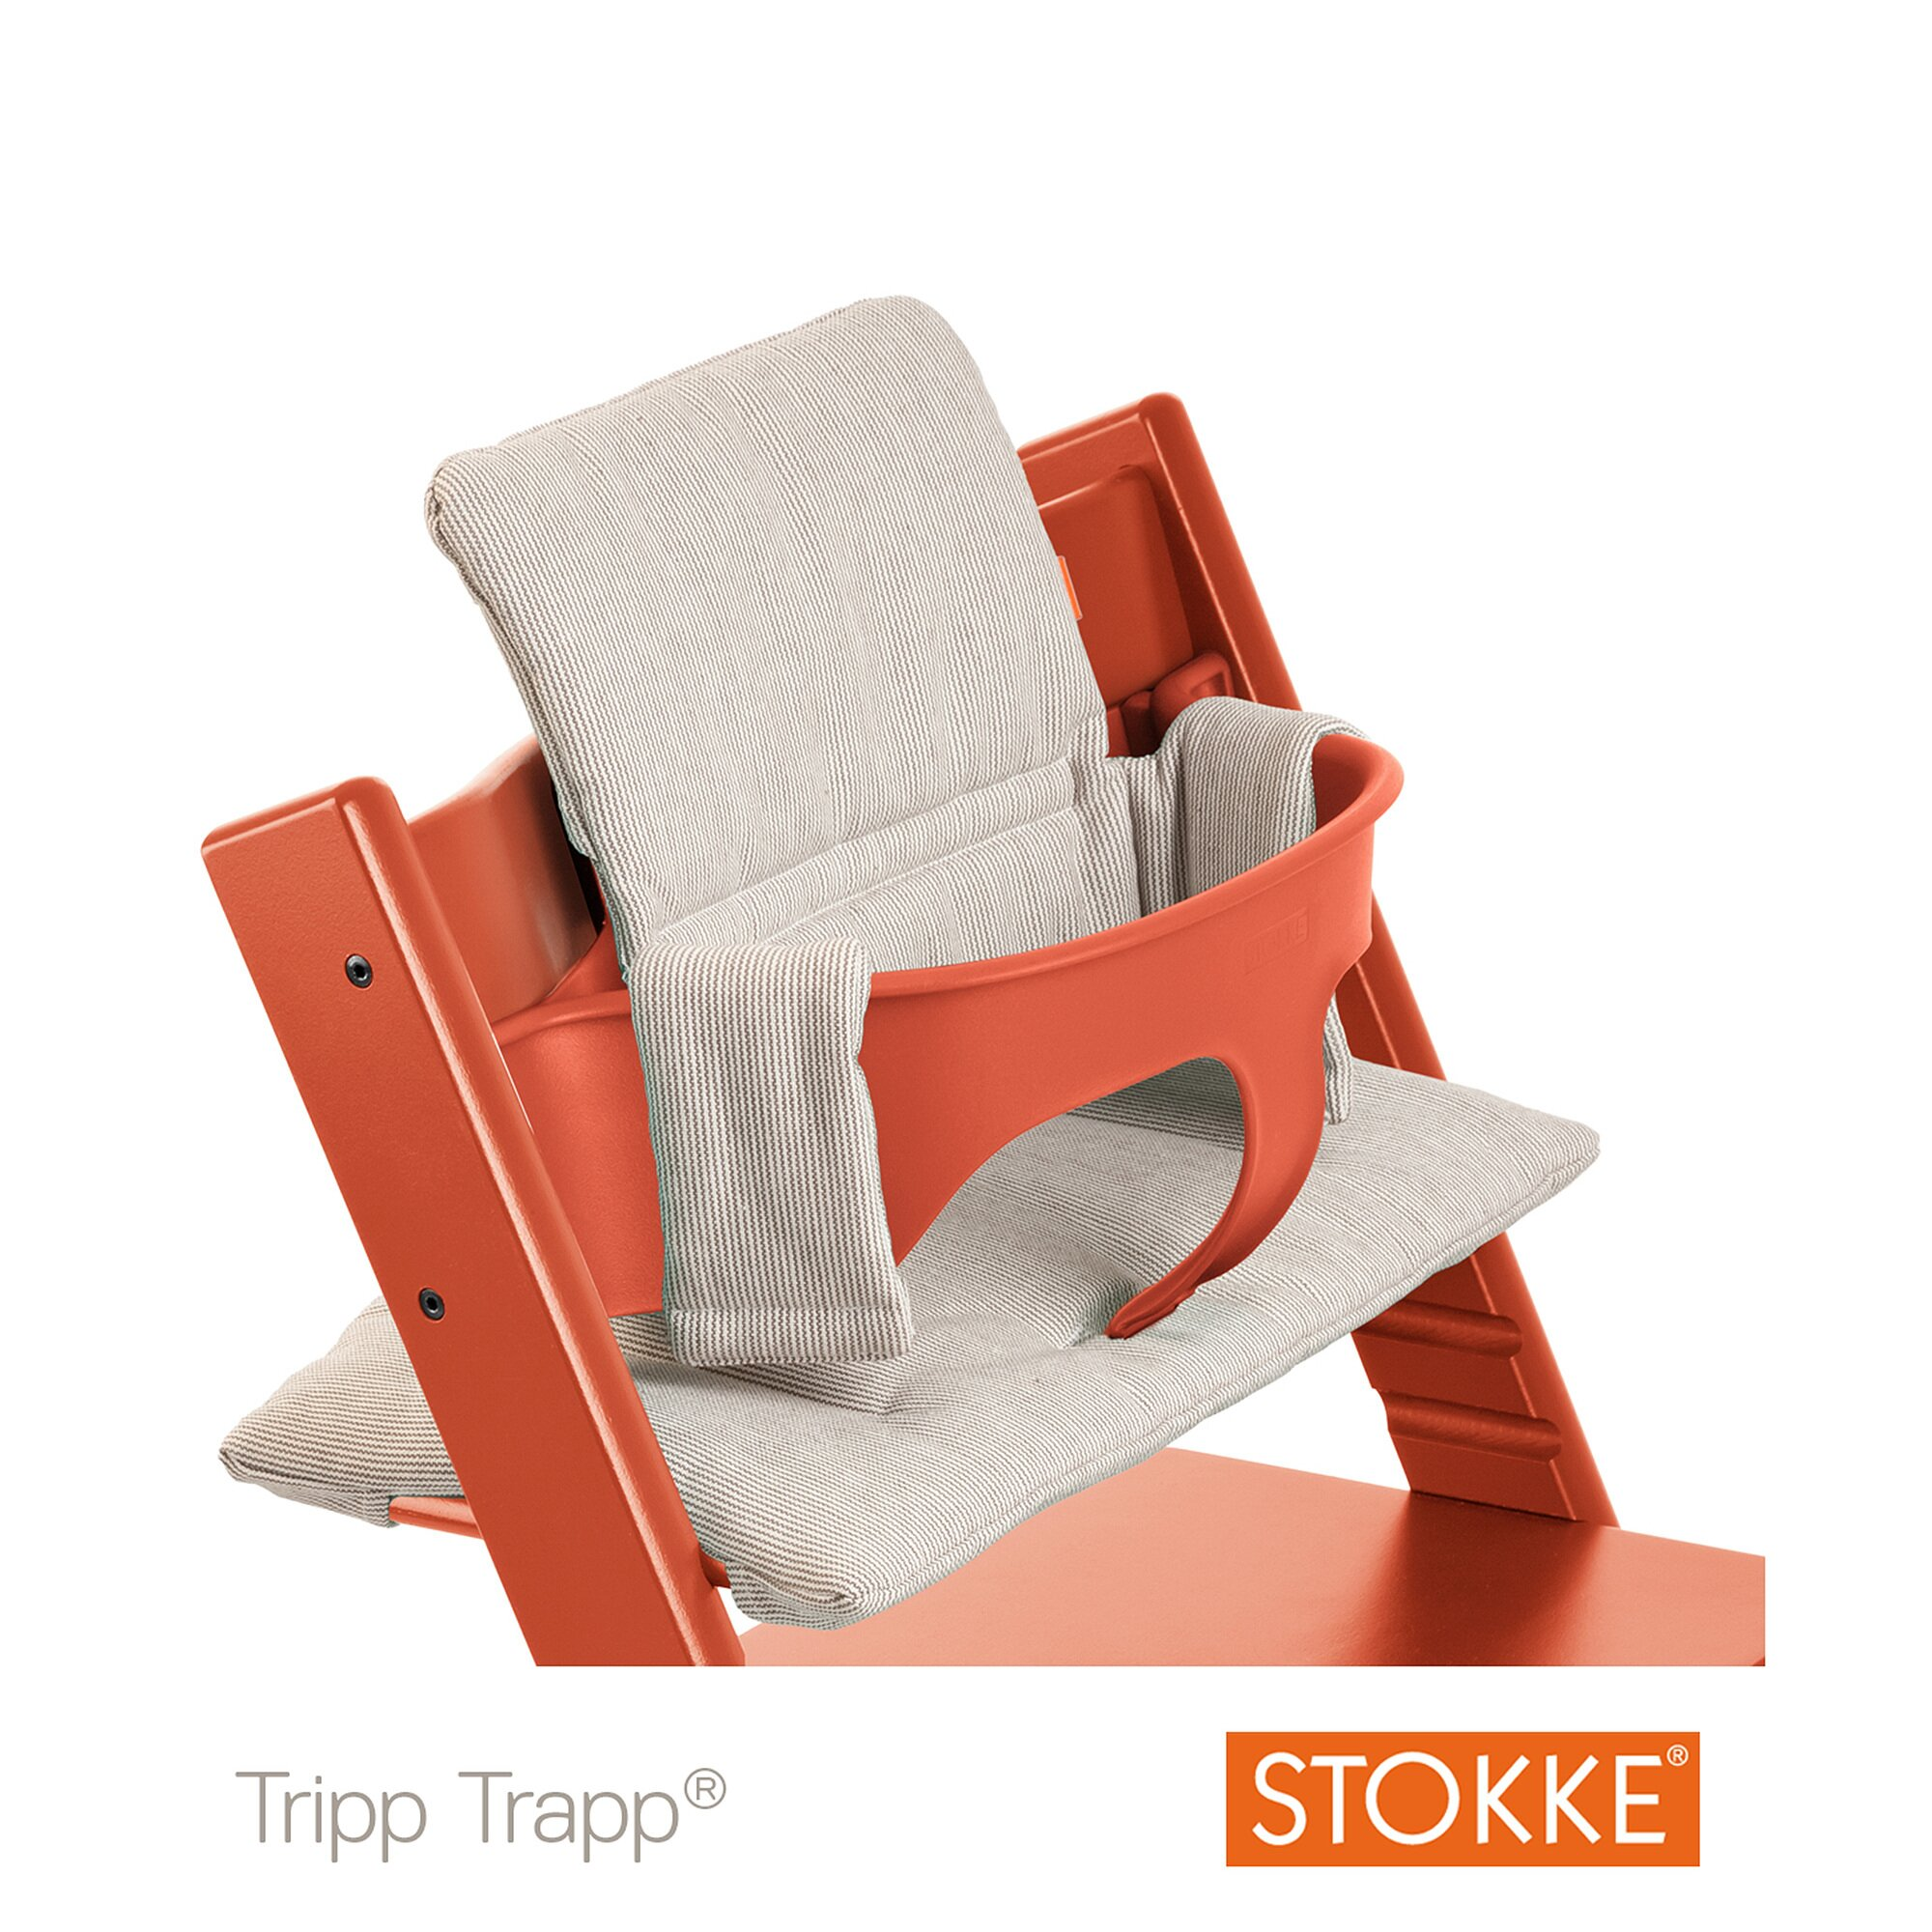 stokke tripp trapp reviews 100 chaise trip trap l chaise. Black Bedroom Furniture Sets. Home Design Ideas